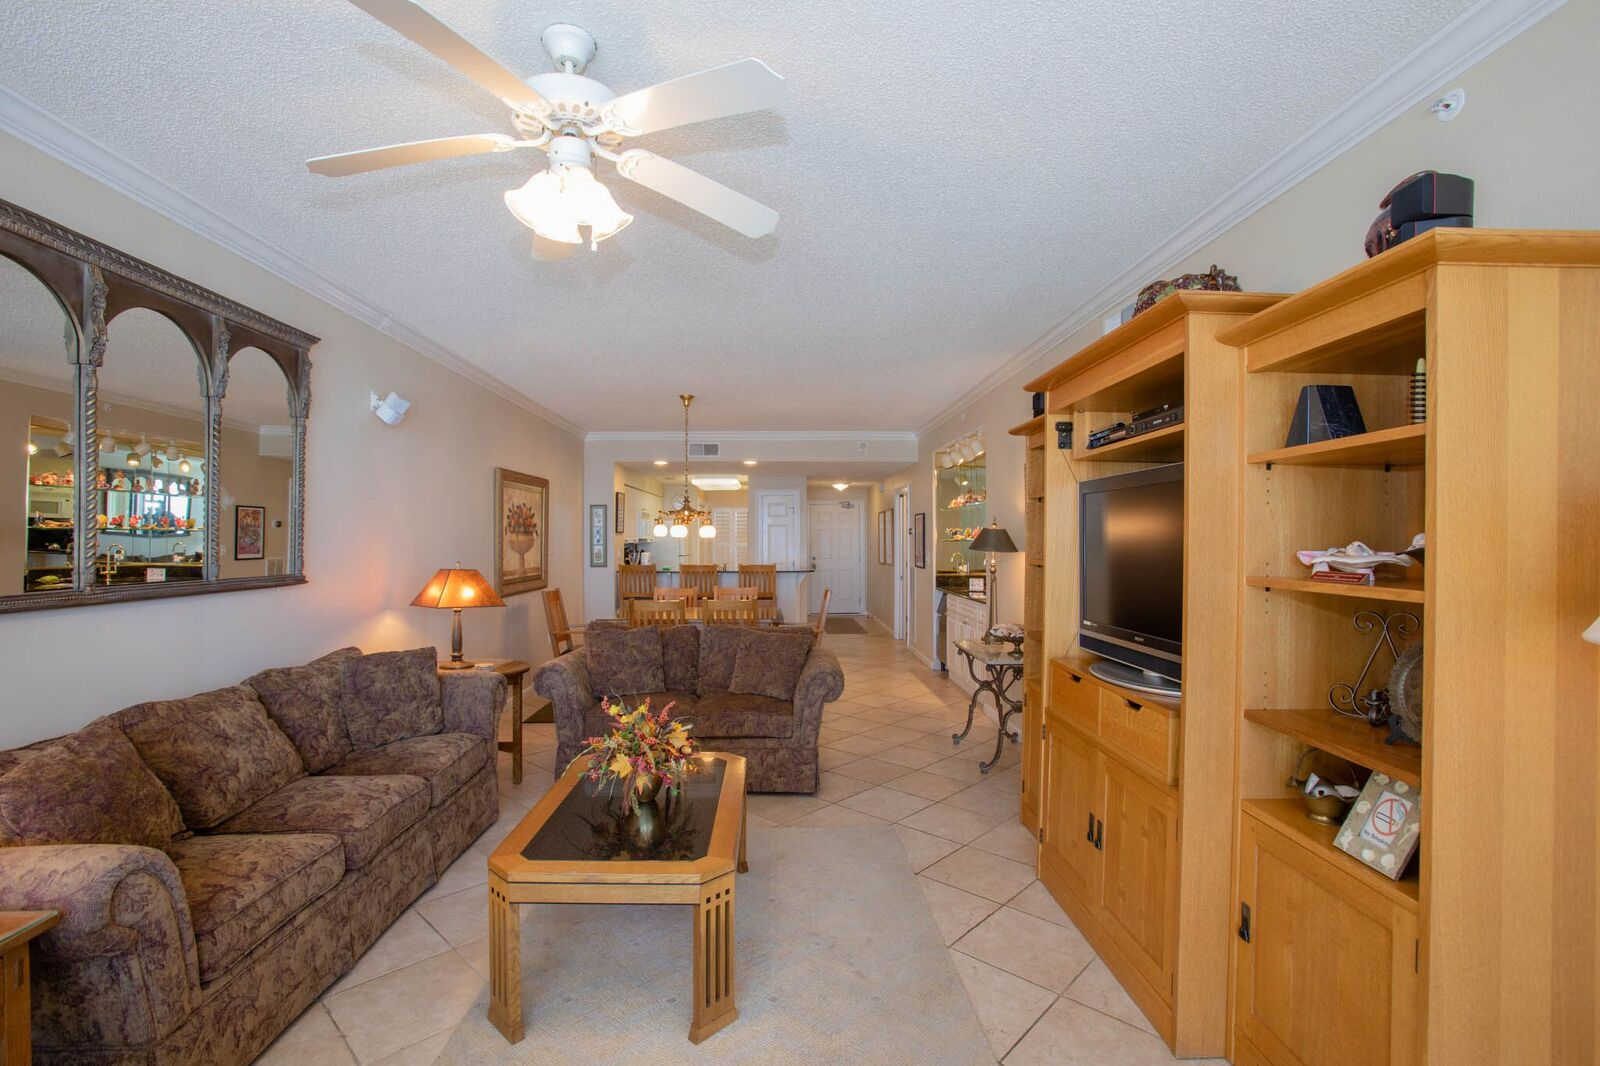 The Pearl of Navarre #504 Condo rental in The Pearl of Navarre Beach in Navarre Florida - #4